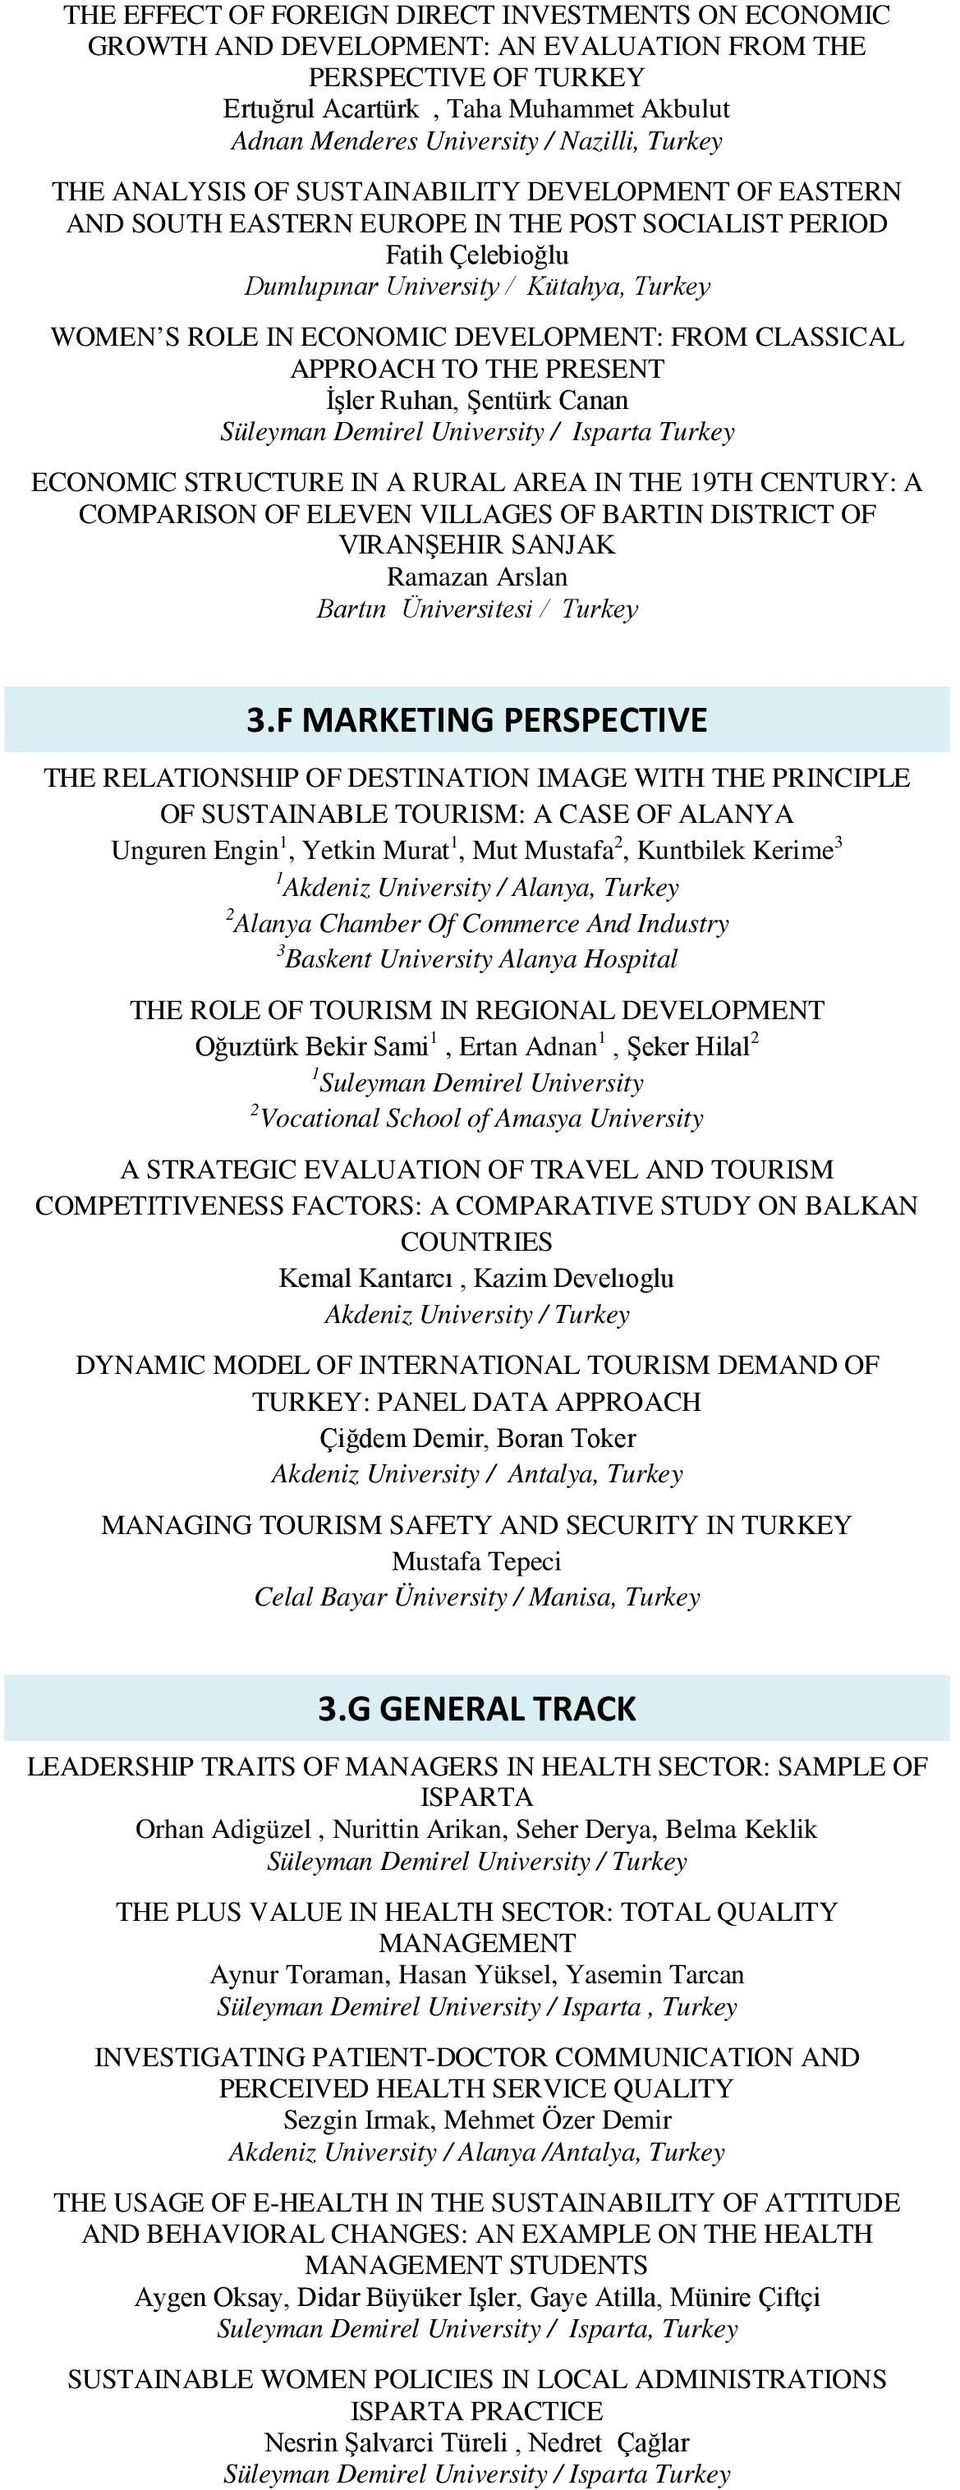 DEVELOPMENT: FROM CLASSICAL APPROACH TO THE PRESENT İşler Ruhan, Şentürk Canan Süleyman Demirel University / Isparta Turkey ECONOMIC STRUCTURE IN A RURAL AREA IN THE 19TH CENTURY: A COMPARISON OF